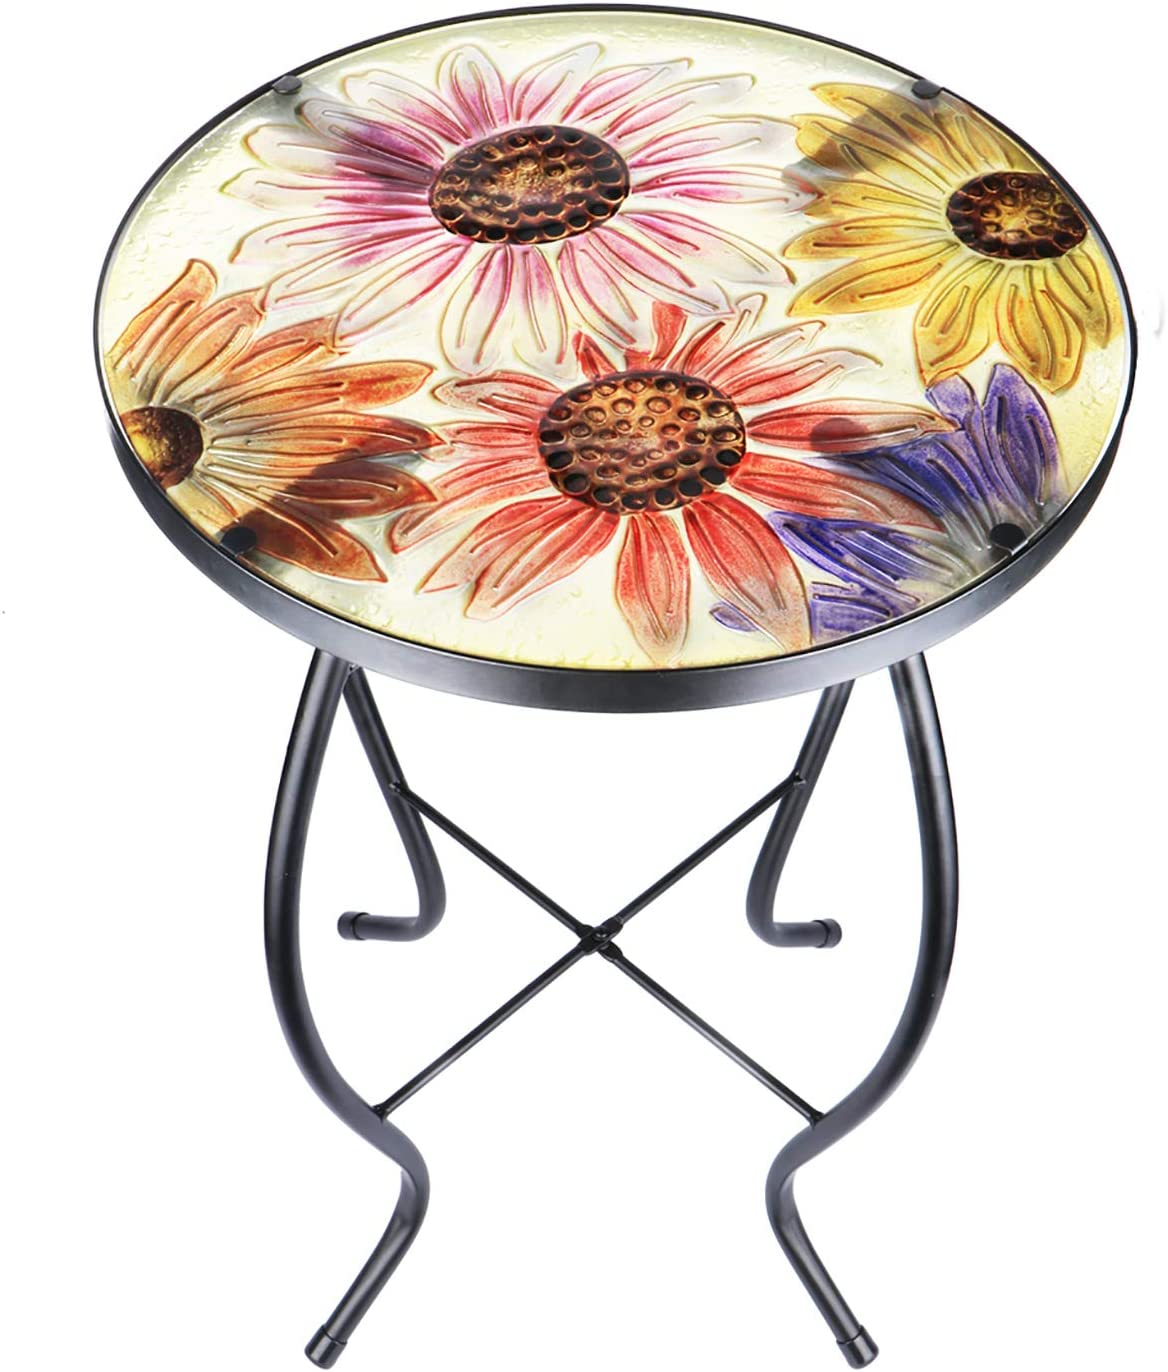 Mosaic Patio Side Table Outdoor Accent Table Bistro Coffee Table Plant End Table Small Porch Table Indoor Round Glass Balcony Hummingbird Plant Table Stands